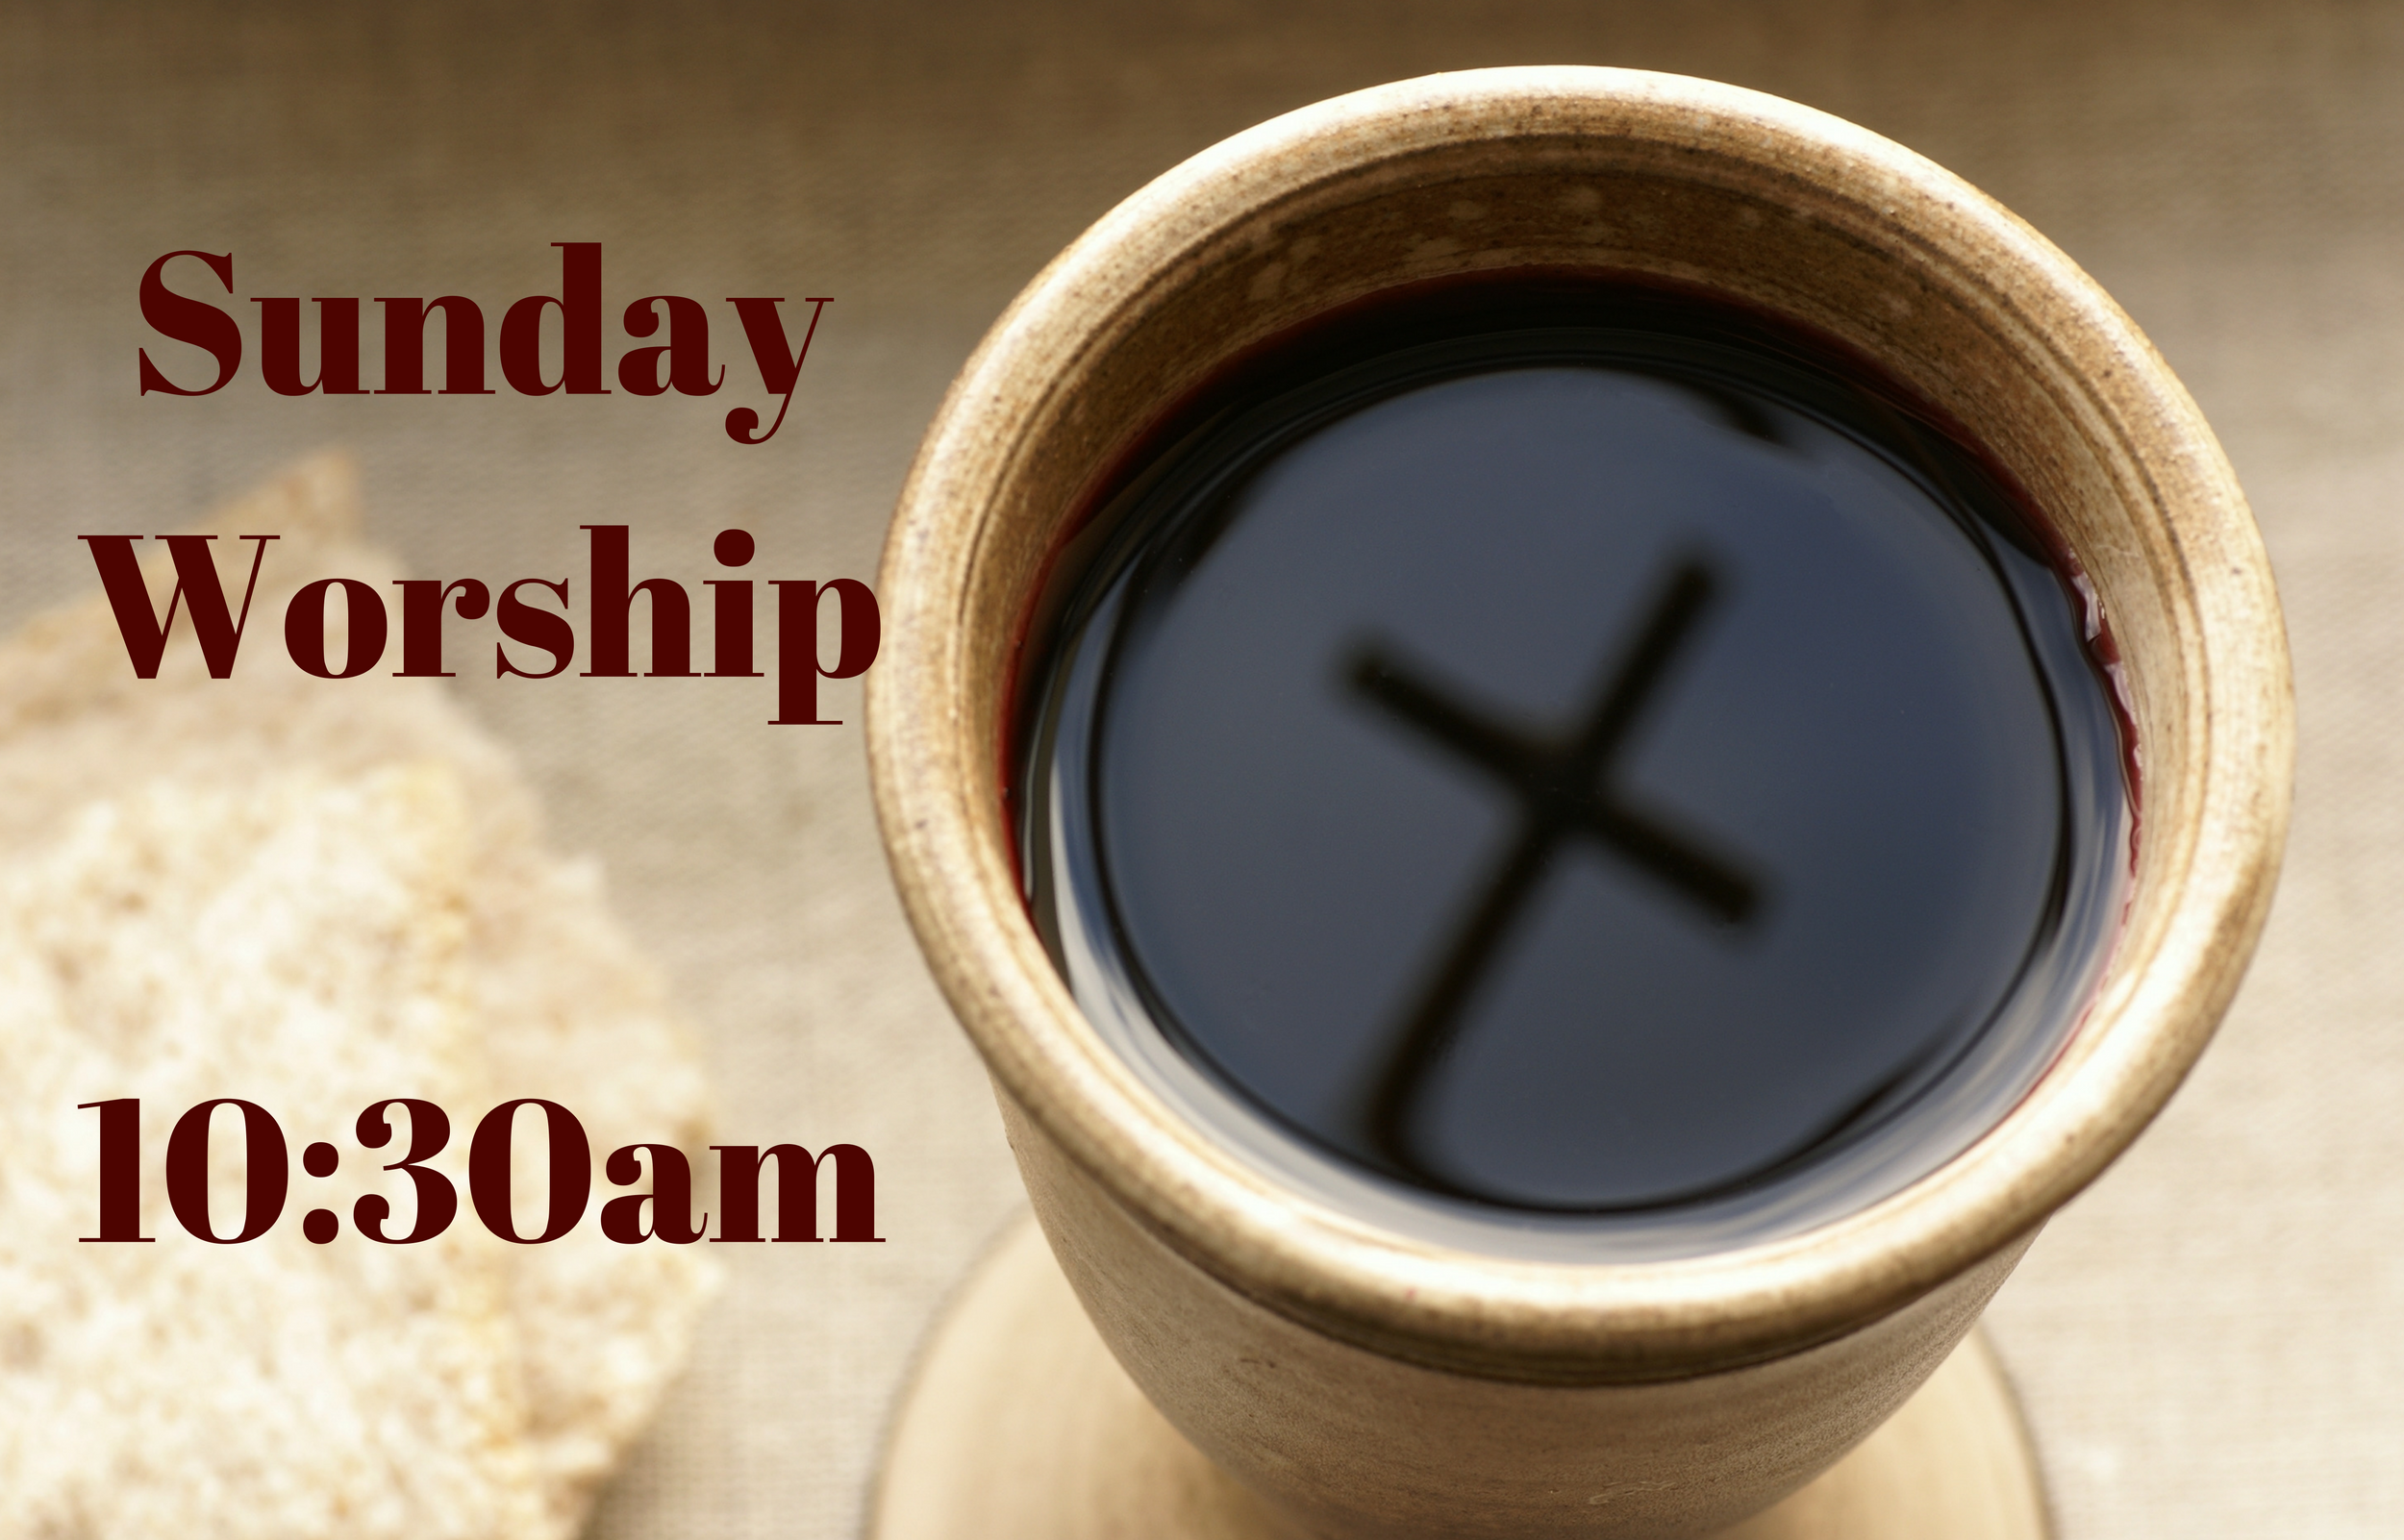 http://s3.amazonaws.com/churchplantmedia-cms/crosslife_church_edmonton/sunday-worship10_30am.png